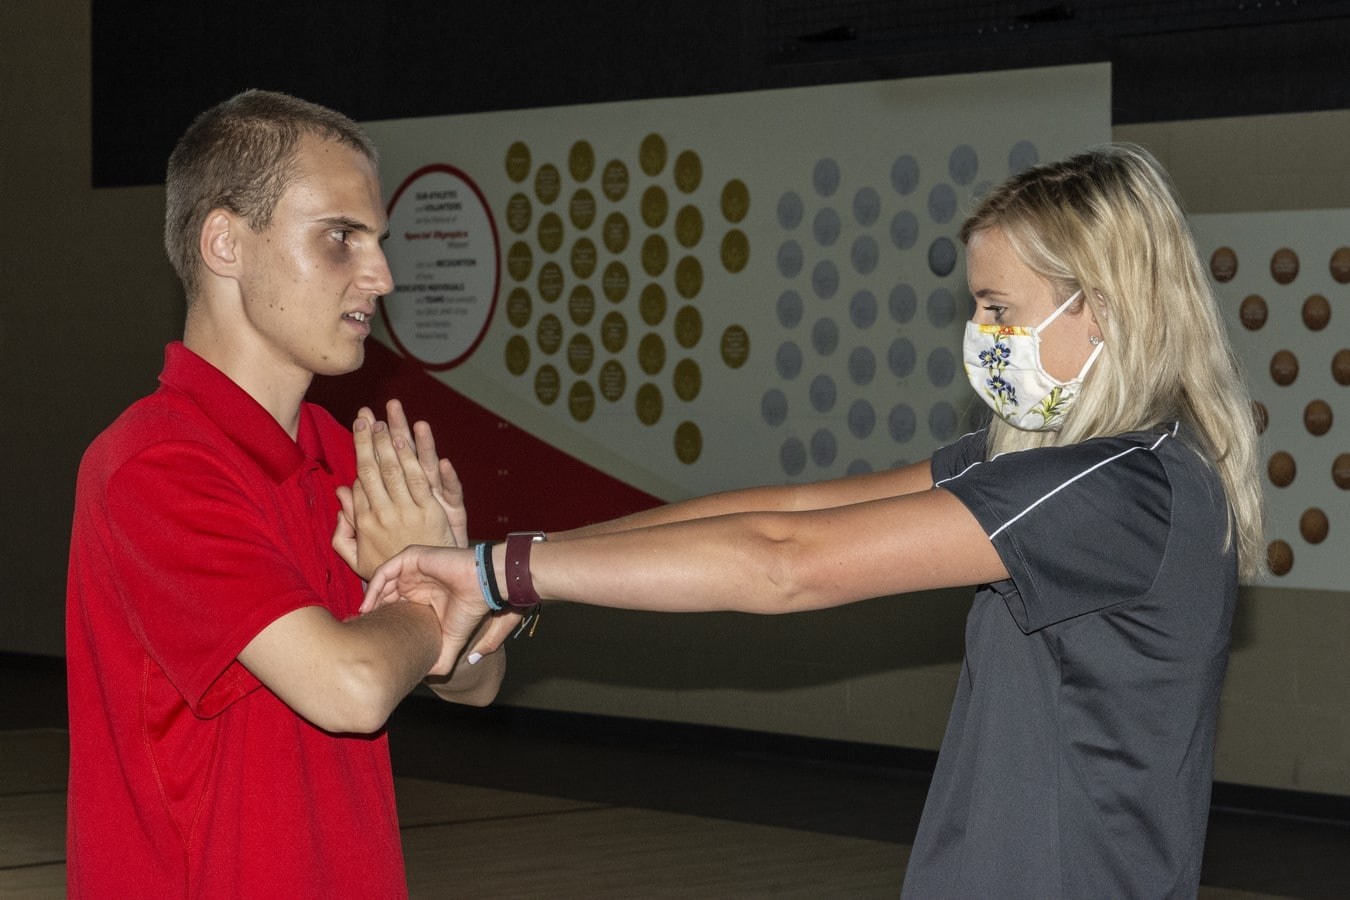 A volunteer helps an athlete stretch their arm muscles